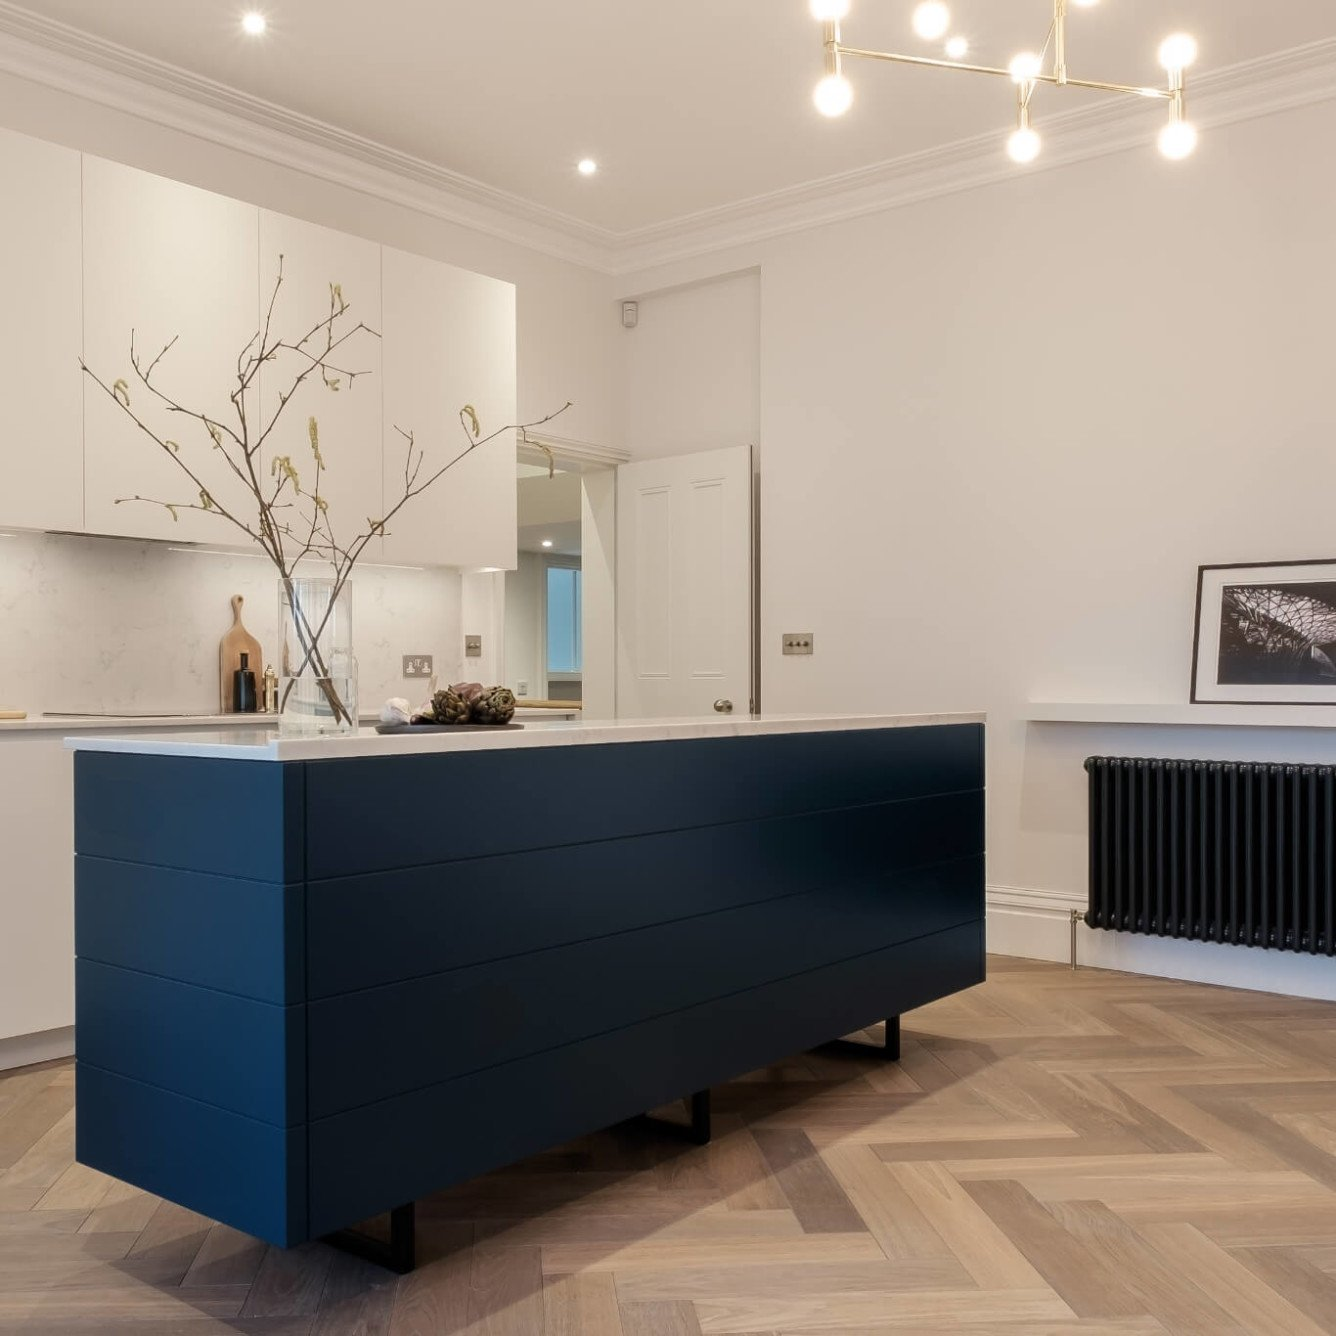 Apartment in Hampstead- bespoke two tone kitchen and island in royal blue